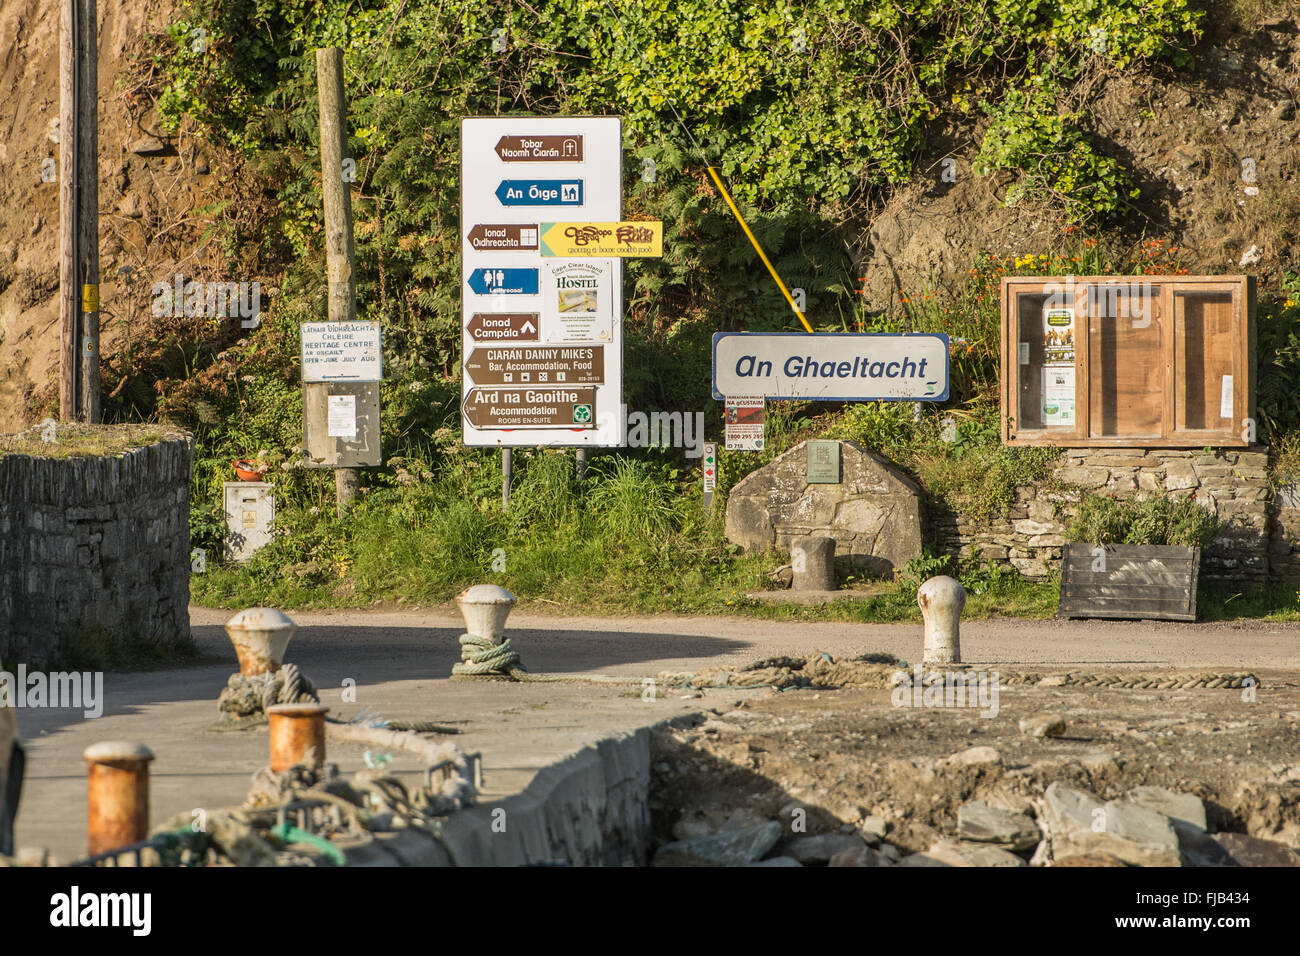 Signs in Irish in the Galetacht (Irish-speaking) island of Cape Clear off south-west Ireland - Stock Image